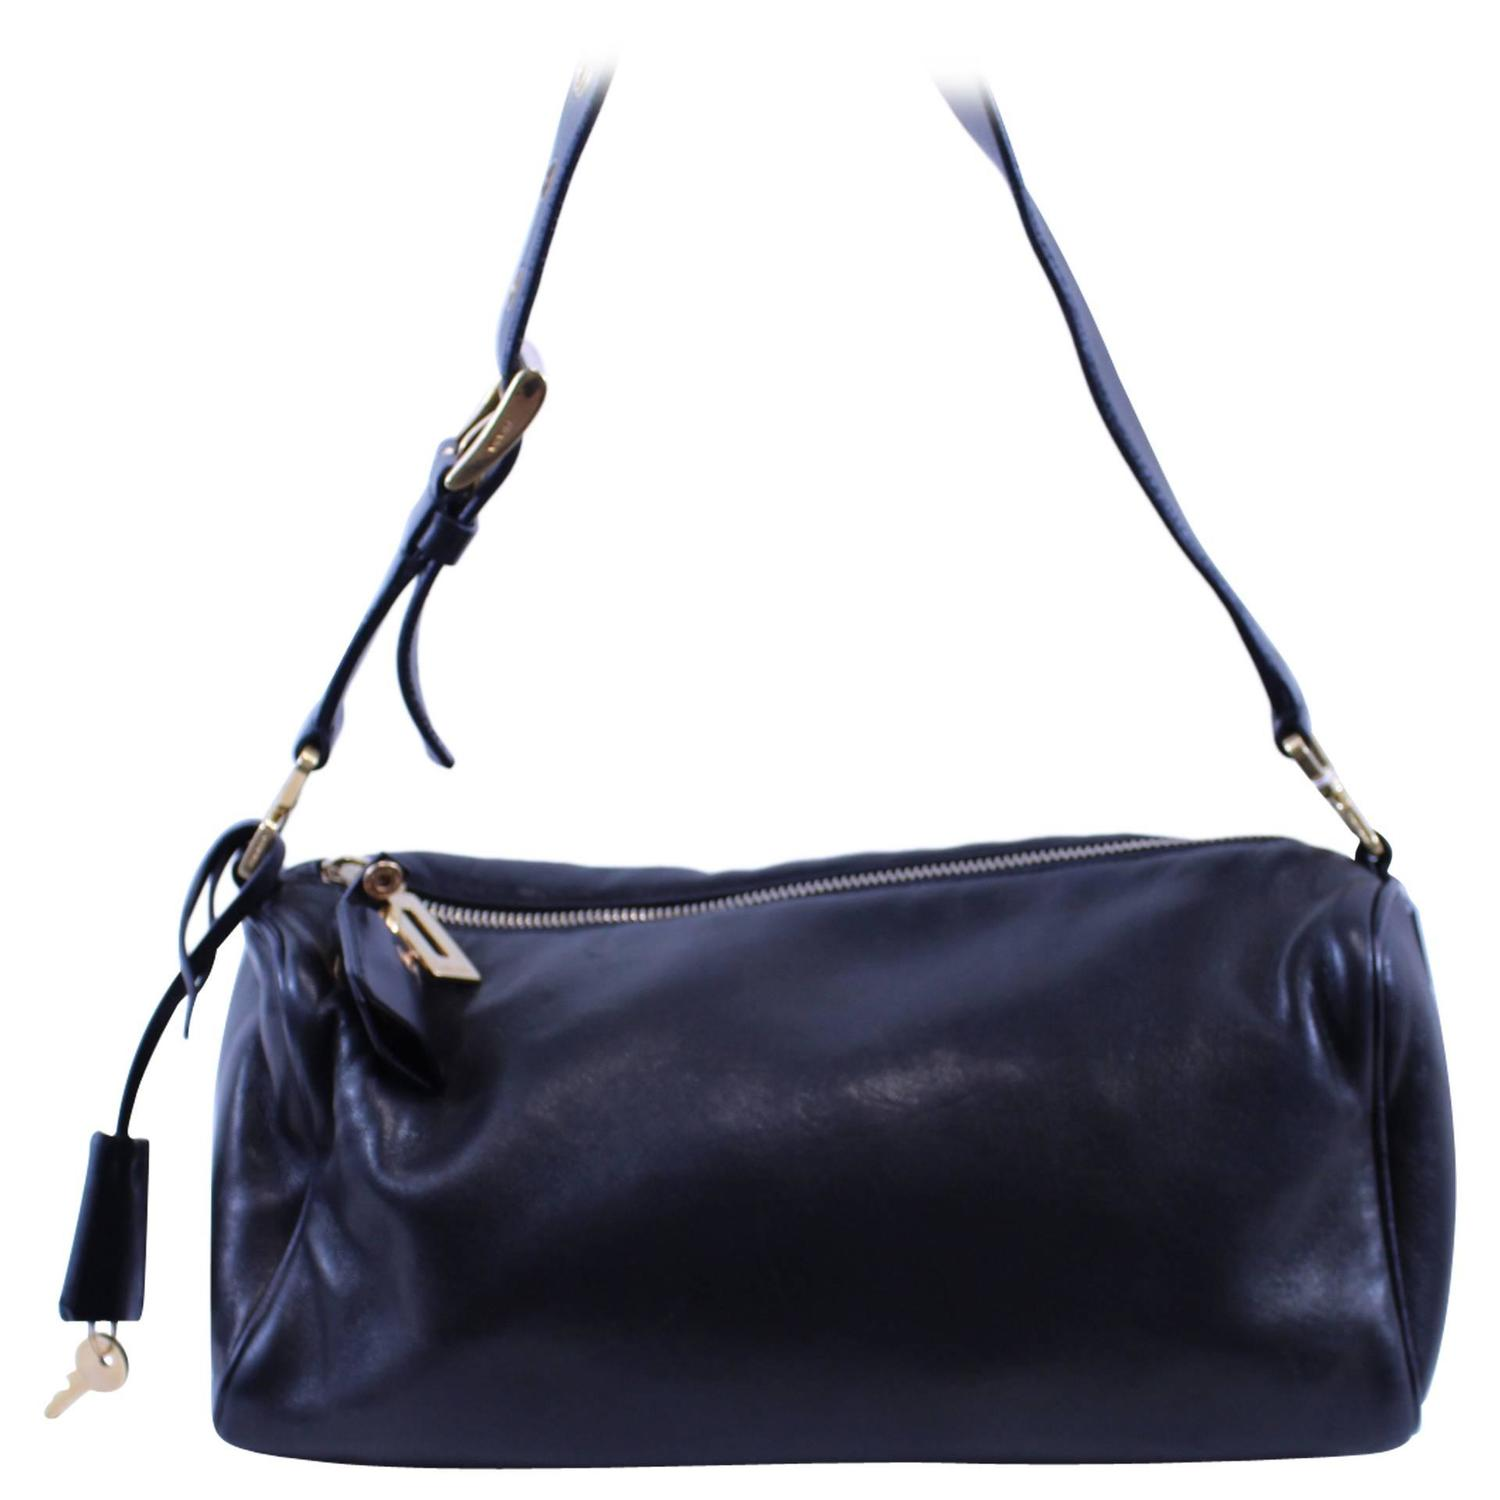 0f10f14f3cb5e1 ... handbags prada nylon hobo bag - Prada black leather bag with silver  hardware For Sale at 1stdibs ...